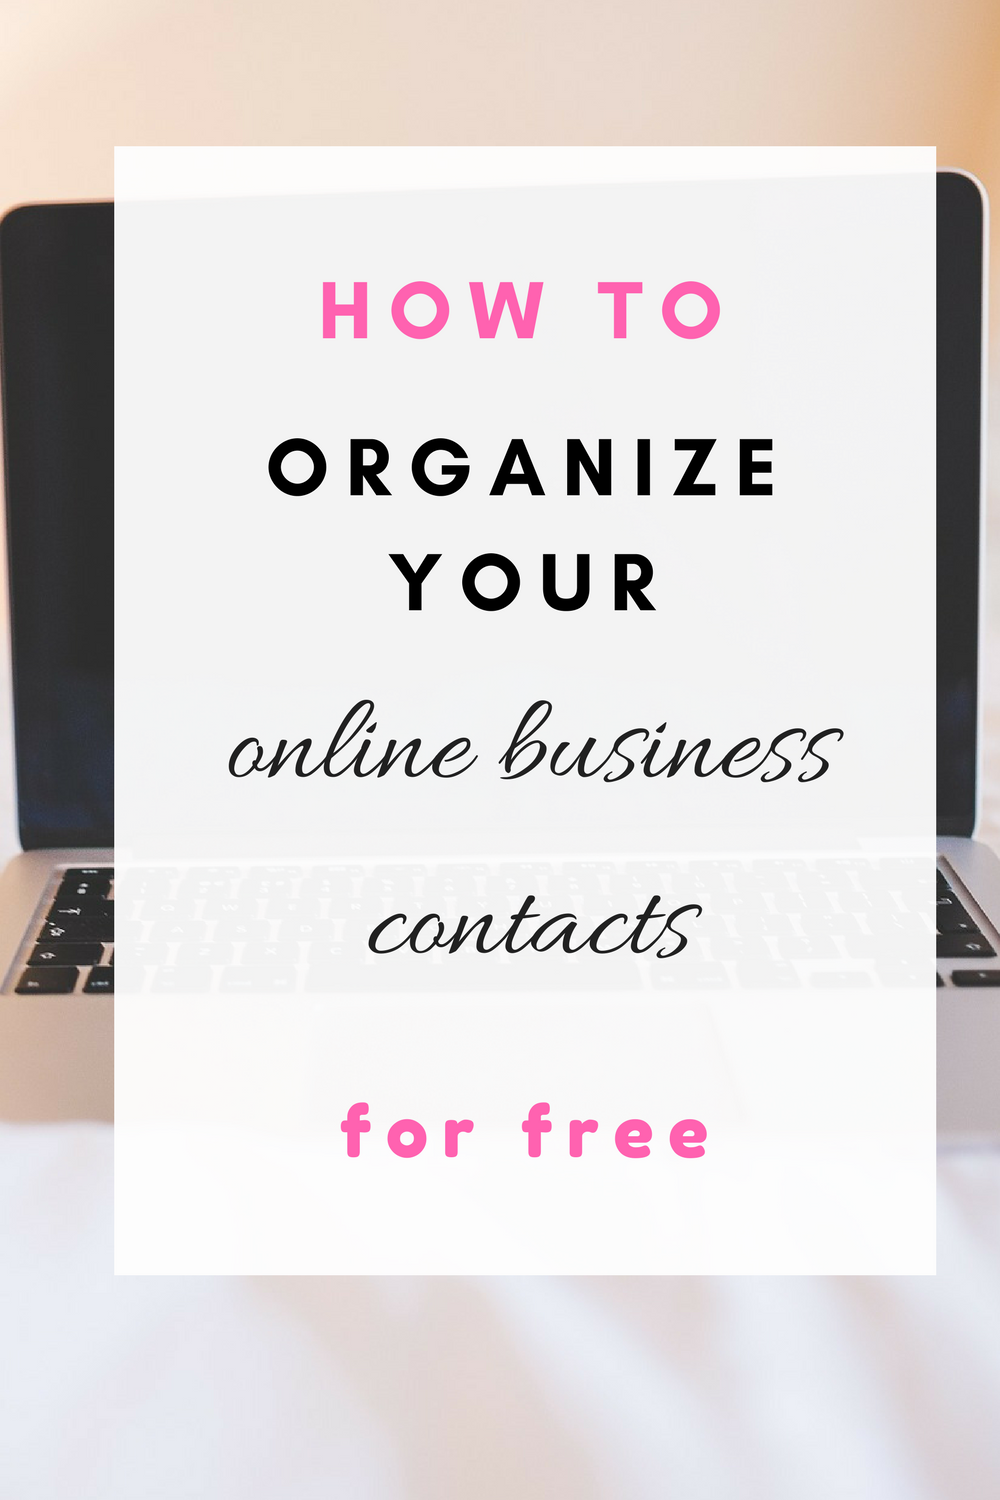 How to organize your online bsiness contacts for free